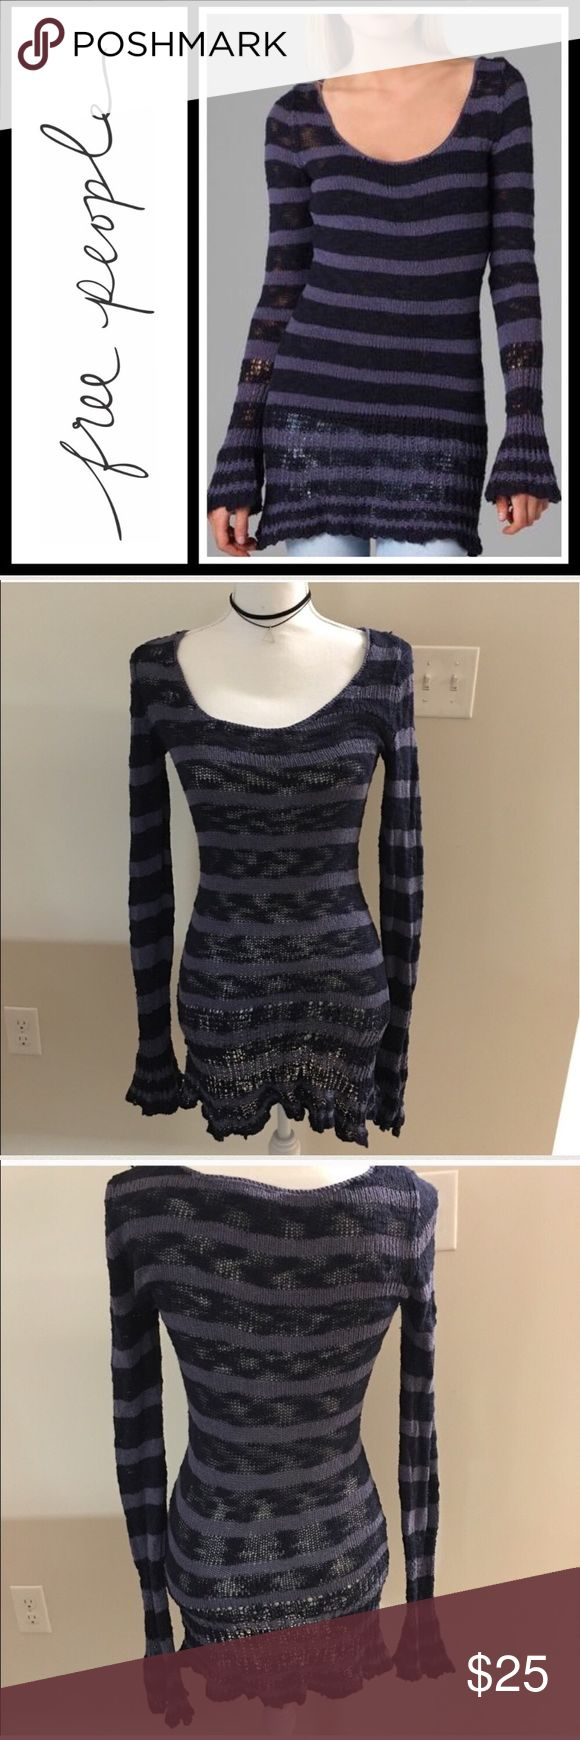 Free People Kiwi Burnout sweater Silk blend sweater- pre loved but lots of life left - size is xs and fits TTS Free People Sweaters